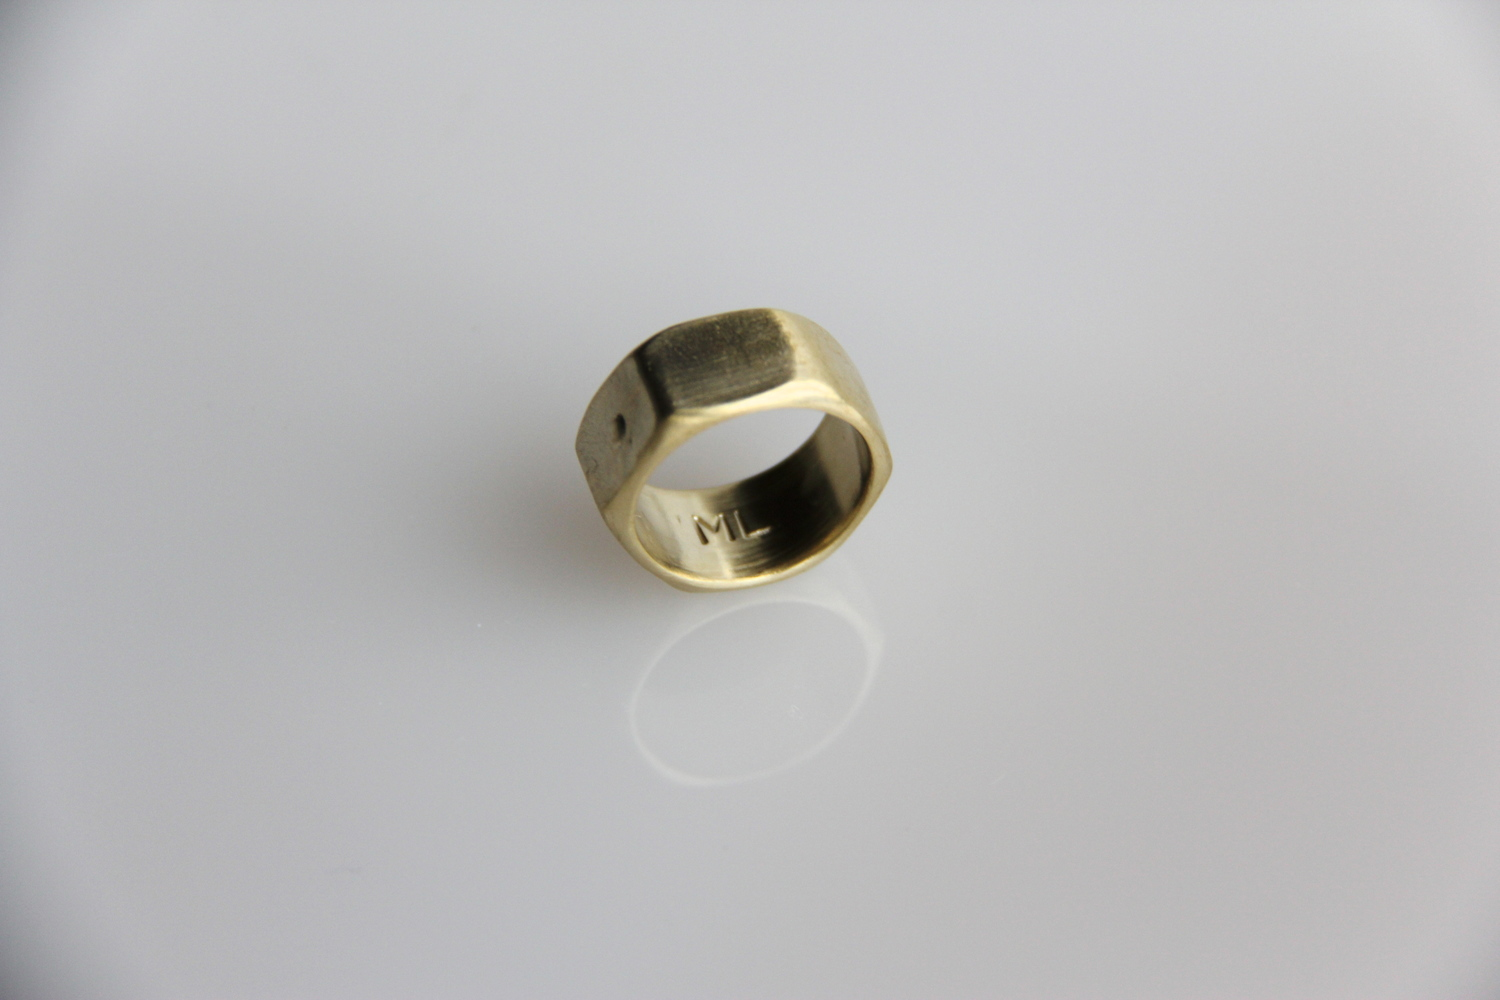 """Brass Nut Ring   The inspiration for this ring was an industrial nut and bolt. Itsdesign combines an industrial nut with the """"brass knuckle"""" weapon into one single ring band. As a wedding band or symbolic love ring, it playfully bolts you to one another—gently and powerfully all at once.  When choosing sizing, select a half size up. So if you are a size 6, then order a 6.5 ring  Matte Yellow Brass"""